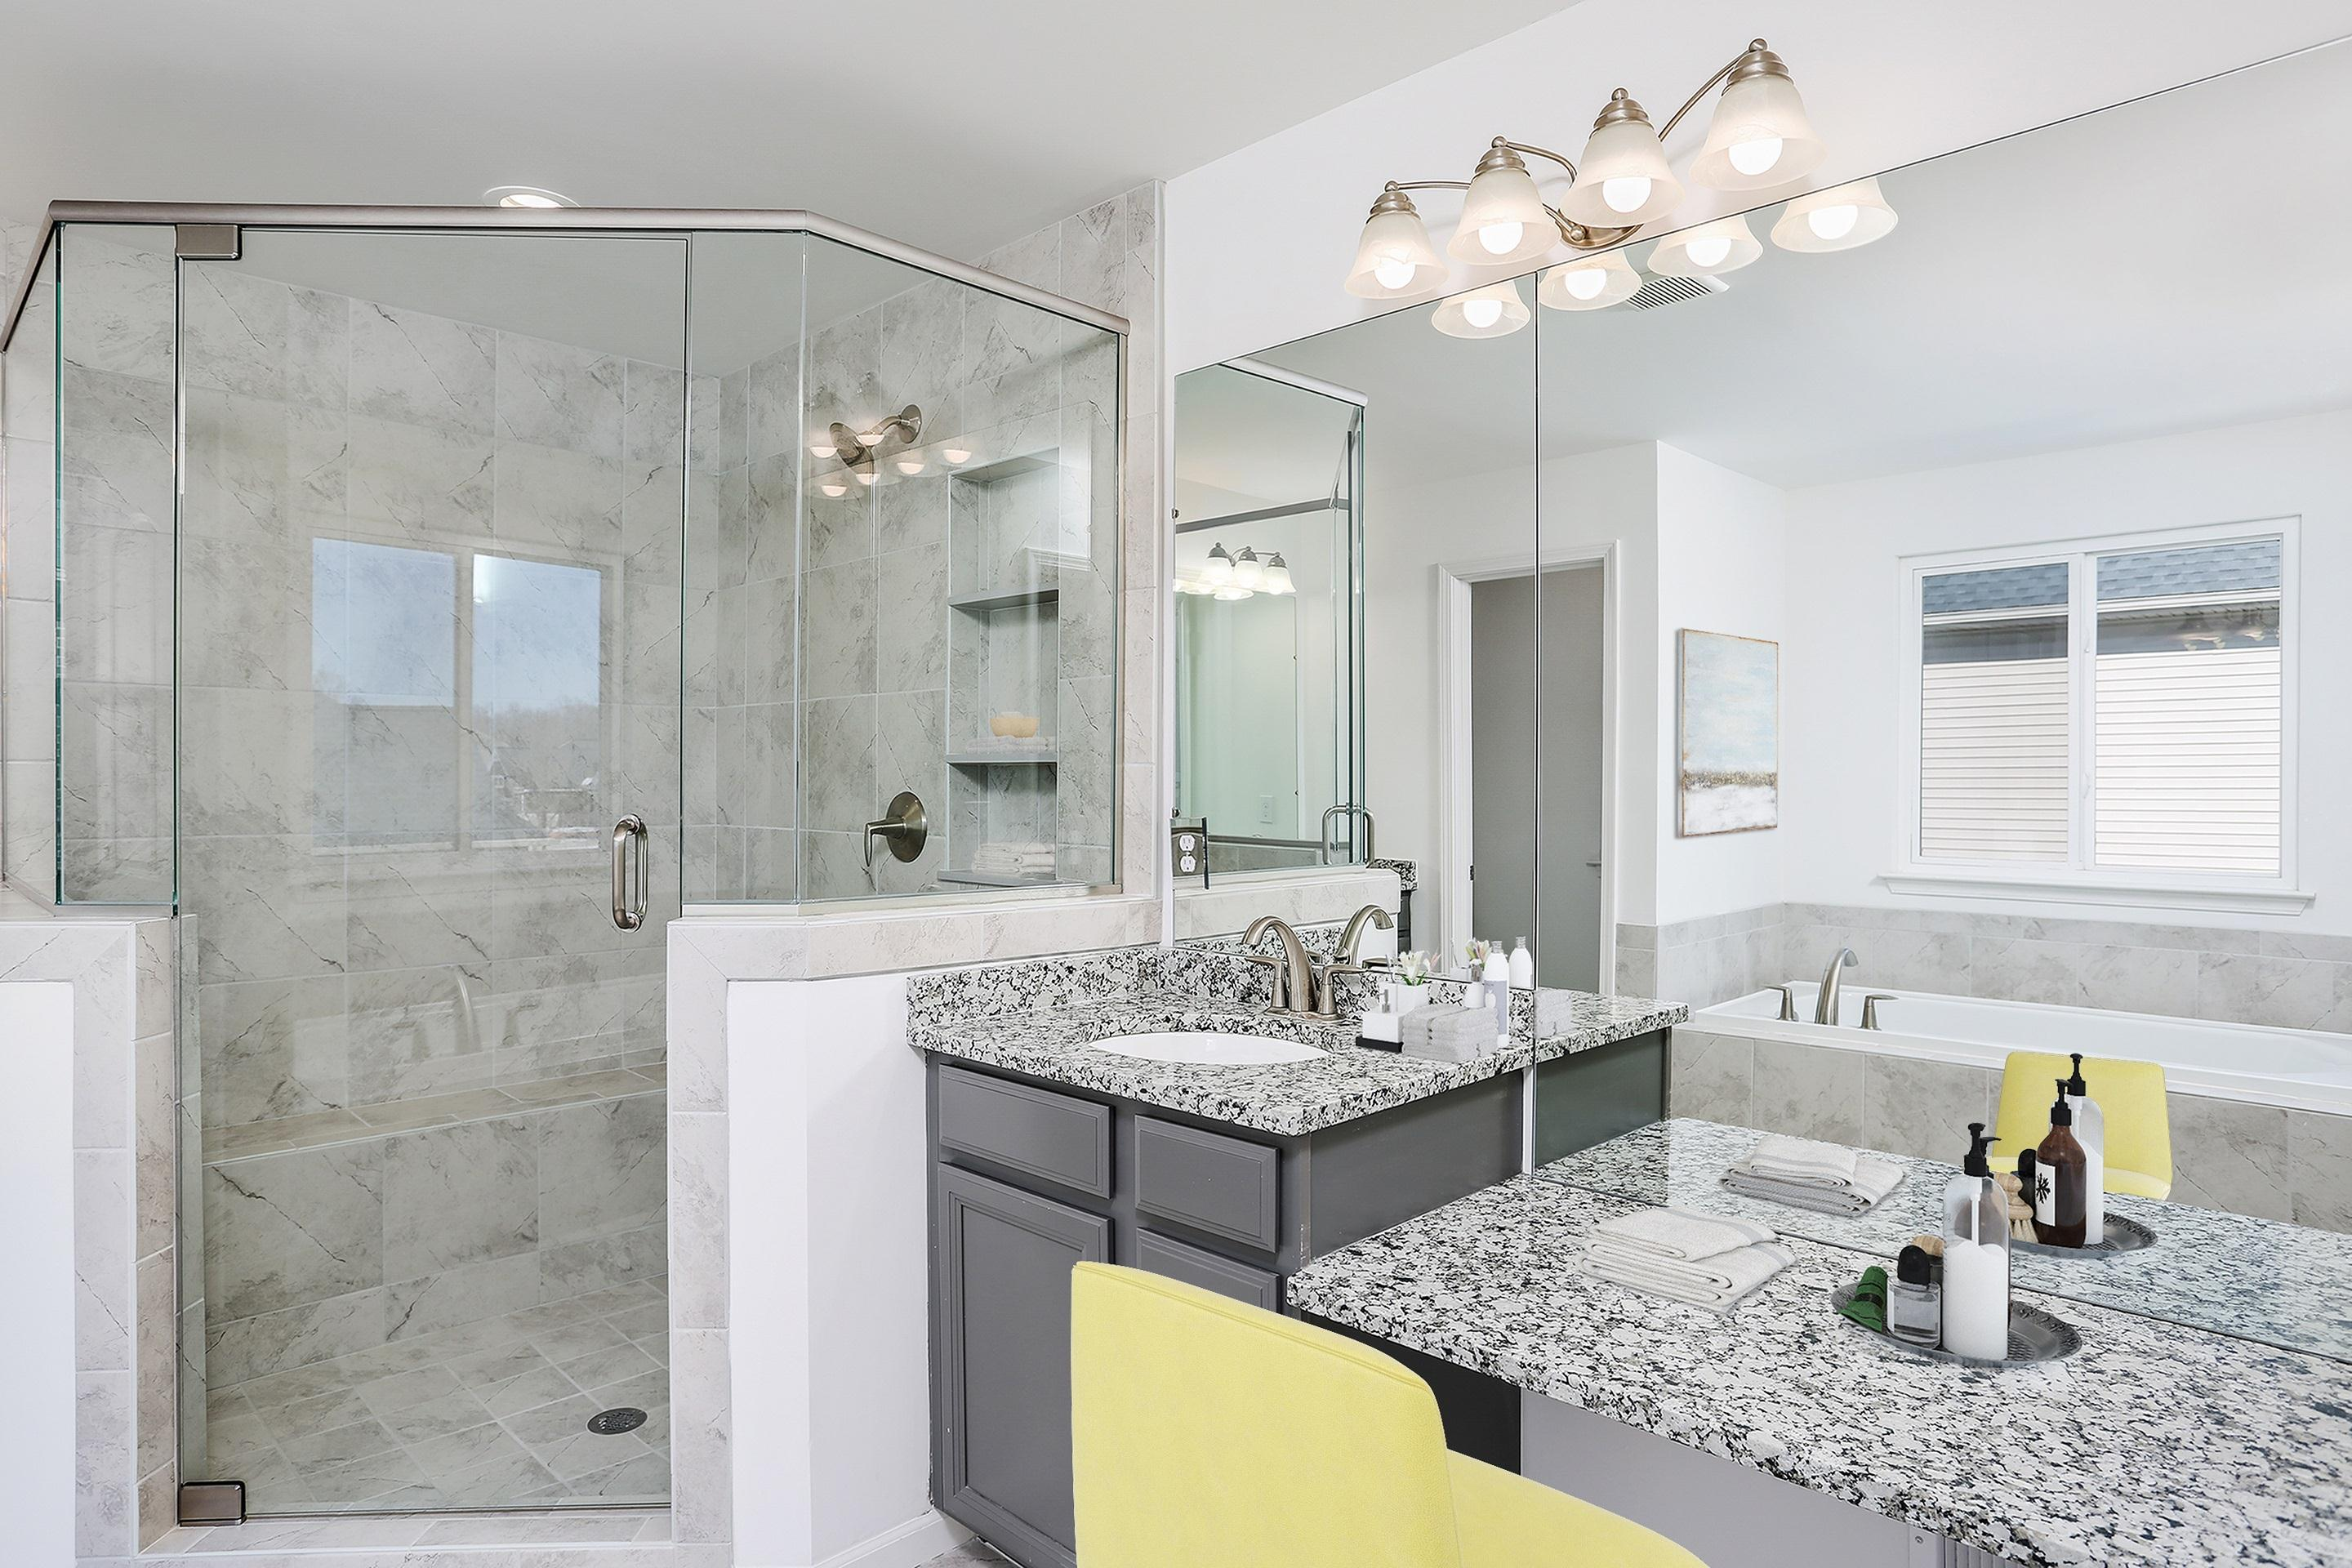 Bathroom featured in the Addison By Singh Homes in Detroit, MI